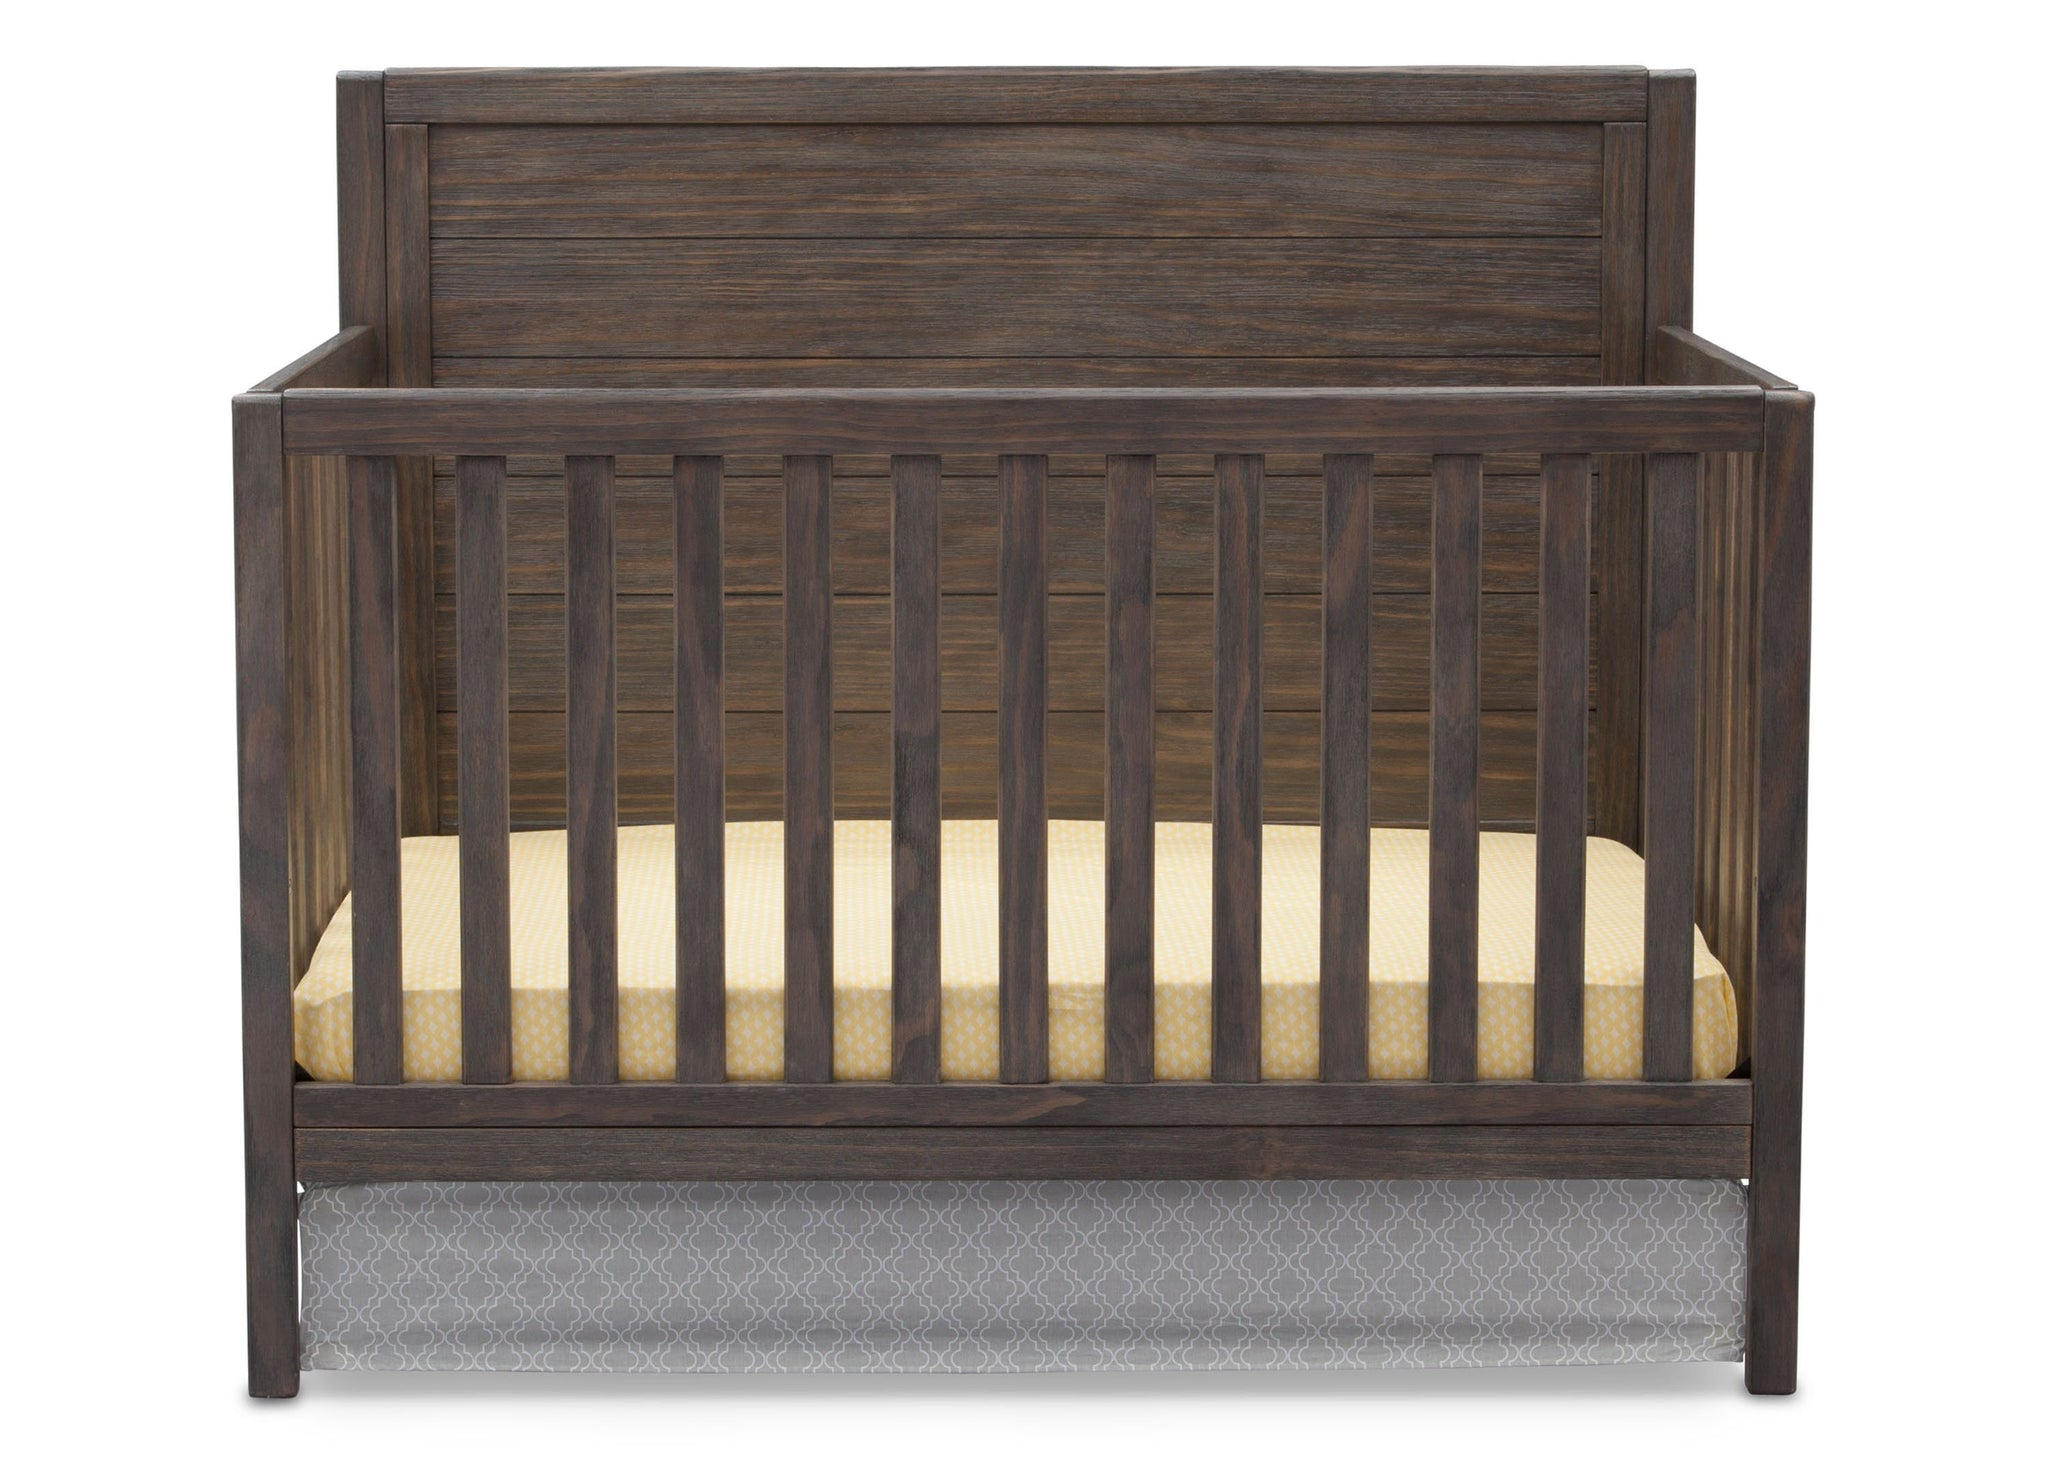 Serta Rustic Grey (084) Cambridge 4-in-1 Convertibel Crib, Front View a2a